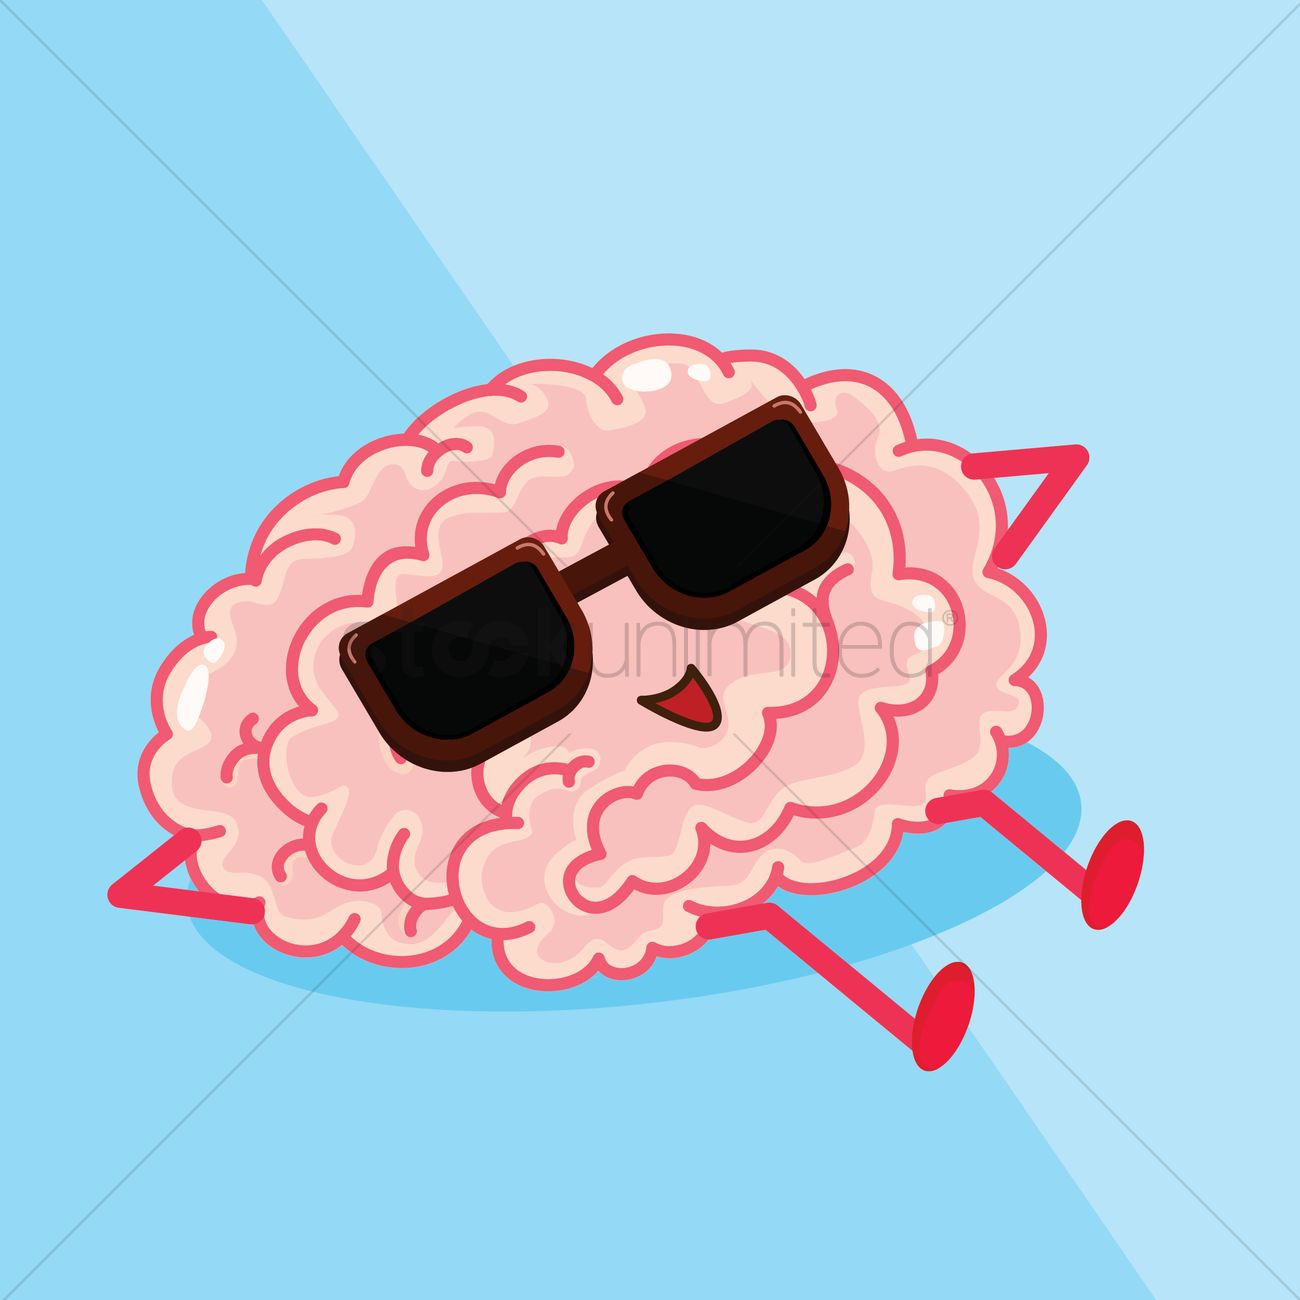 Expression Expressions Brain Brains Cartoon Character Characters ...